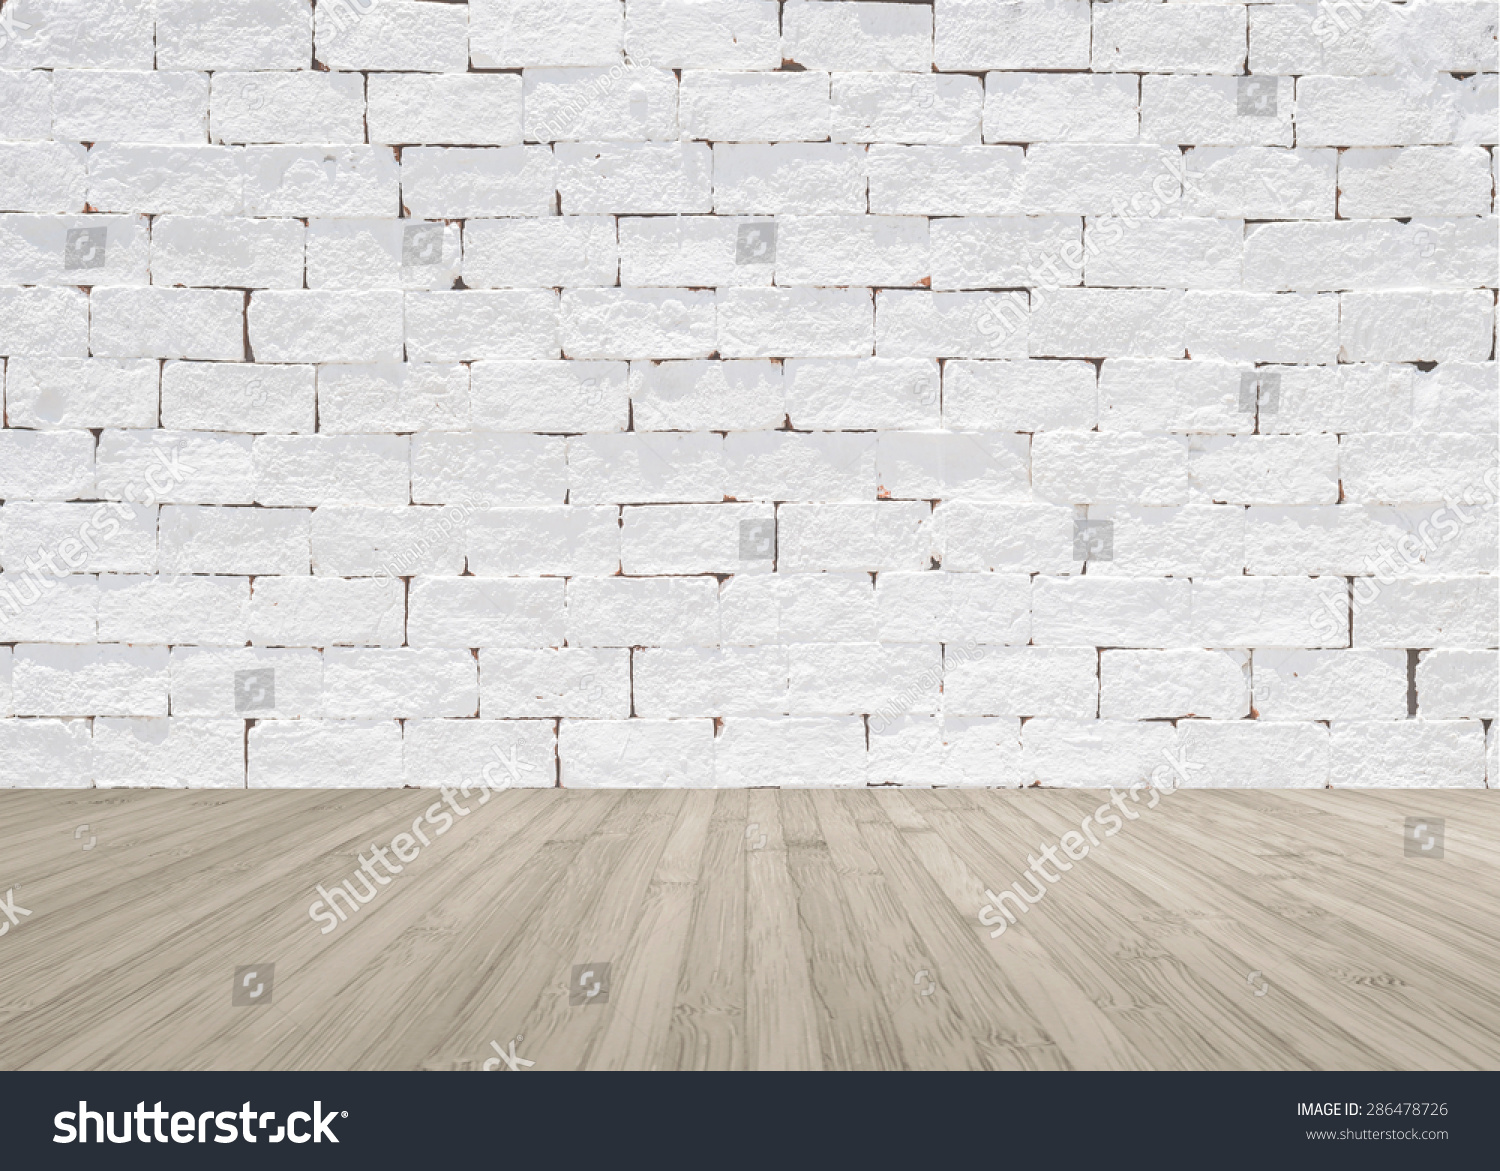 White painted brick wall texture wooden stock photo 286478726 shutterstock - Exterior textured masonry paint model ...